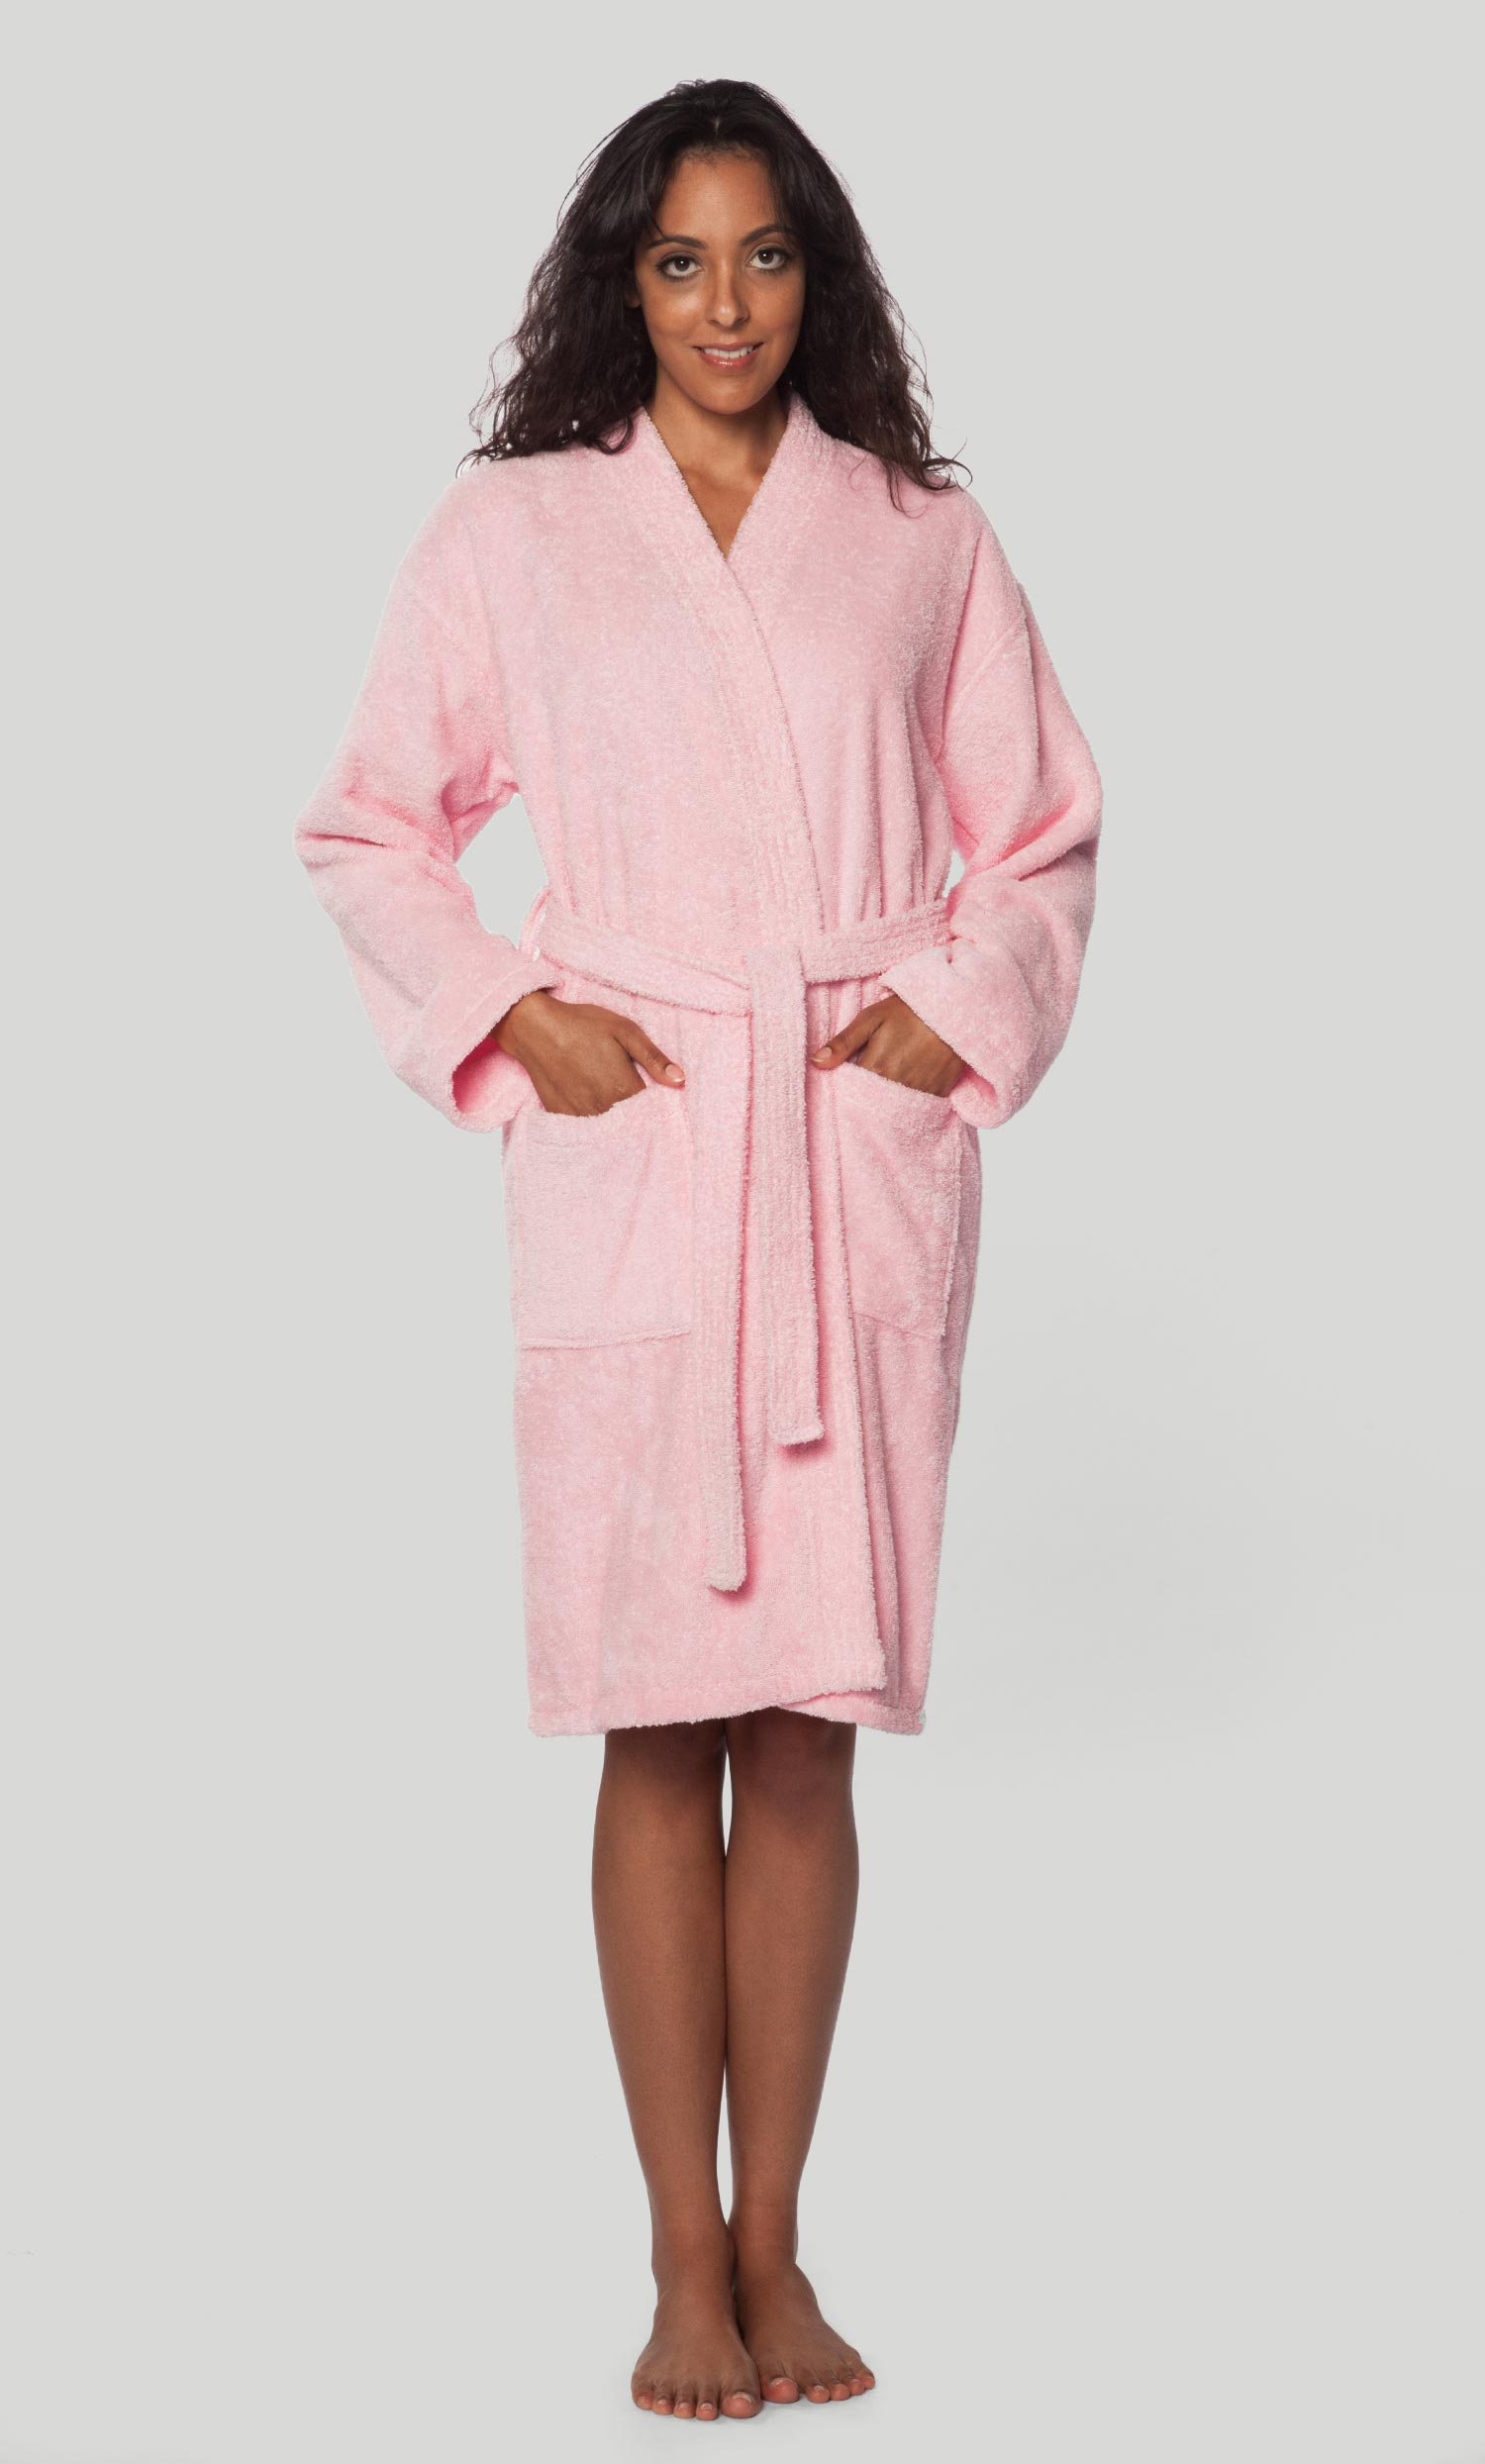 1bb37200d1 Economy Bathrobes    Terry Kimono Bathrobes    100% Turkish Cotton Pink  Terry Kimono Bathrobe - Wholesale bathrobes